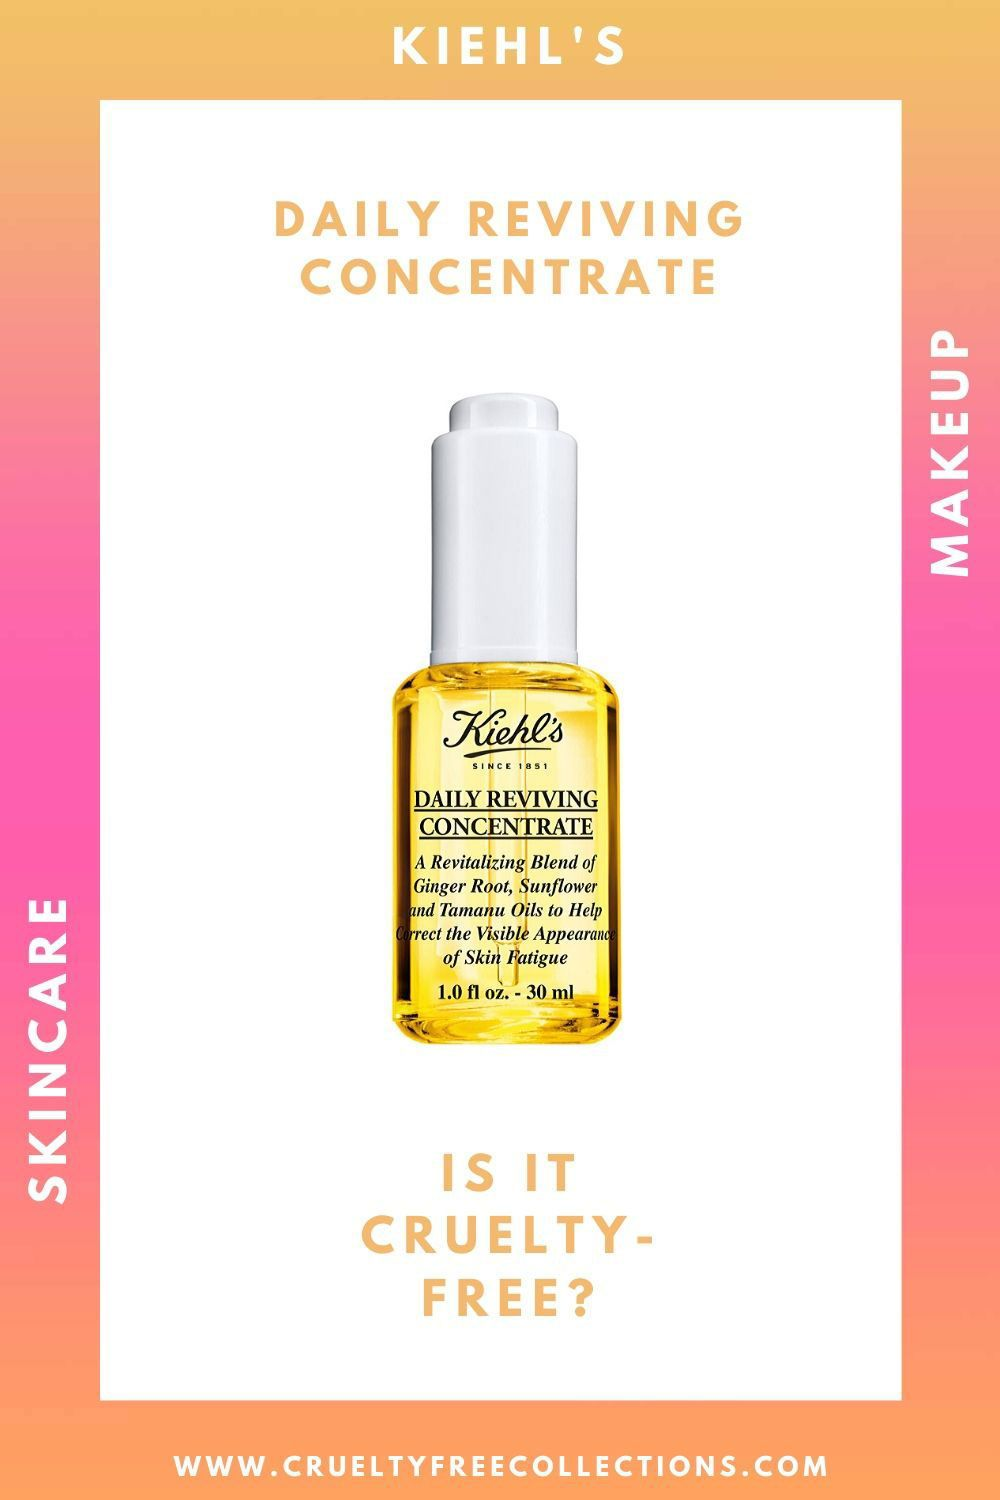 Kiehl's Daily Reviving Concentrate in 2020 Kiehls